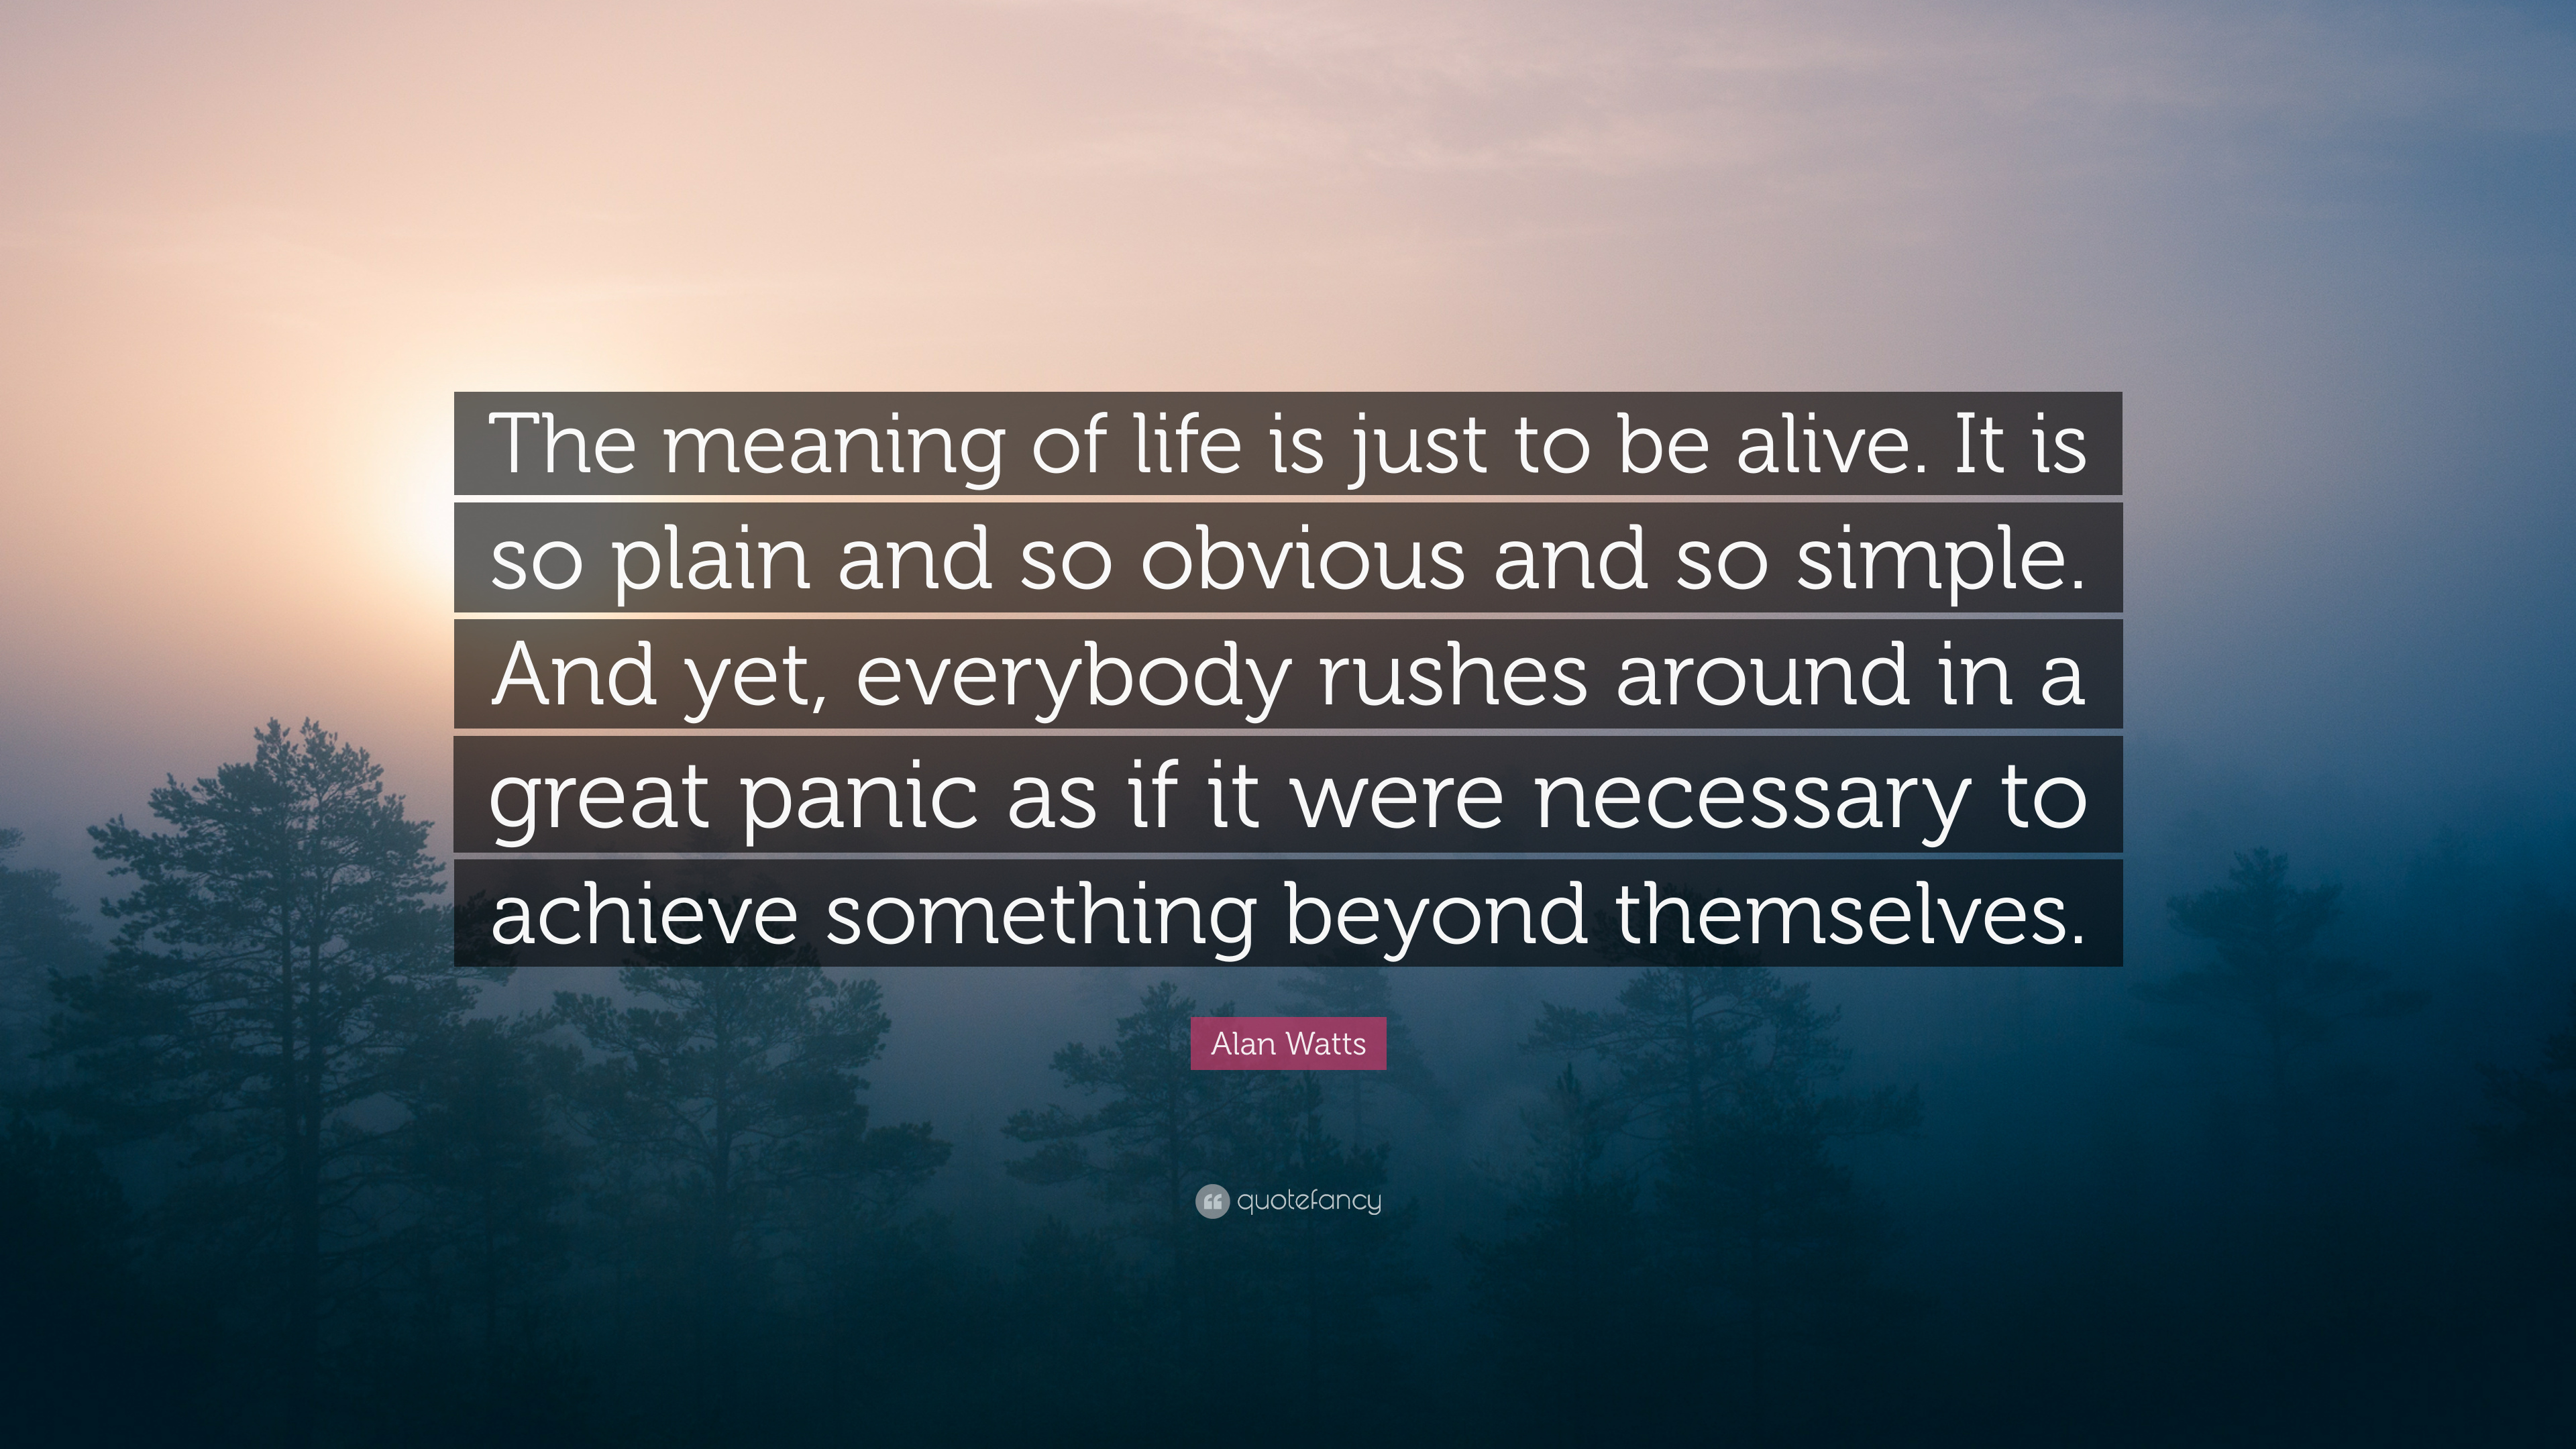 John Lennon Quotes Wallpaper Alan Watts Quote The Meaning Of Life Is Just To Be Alive